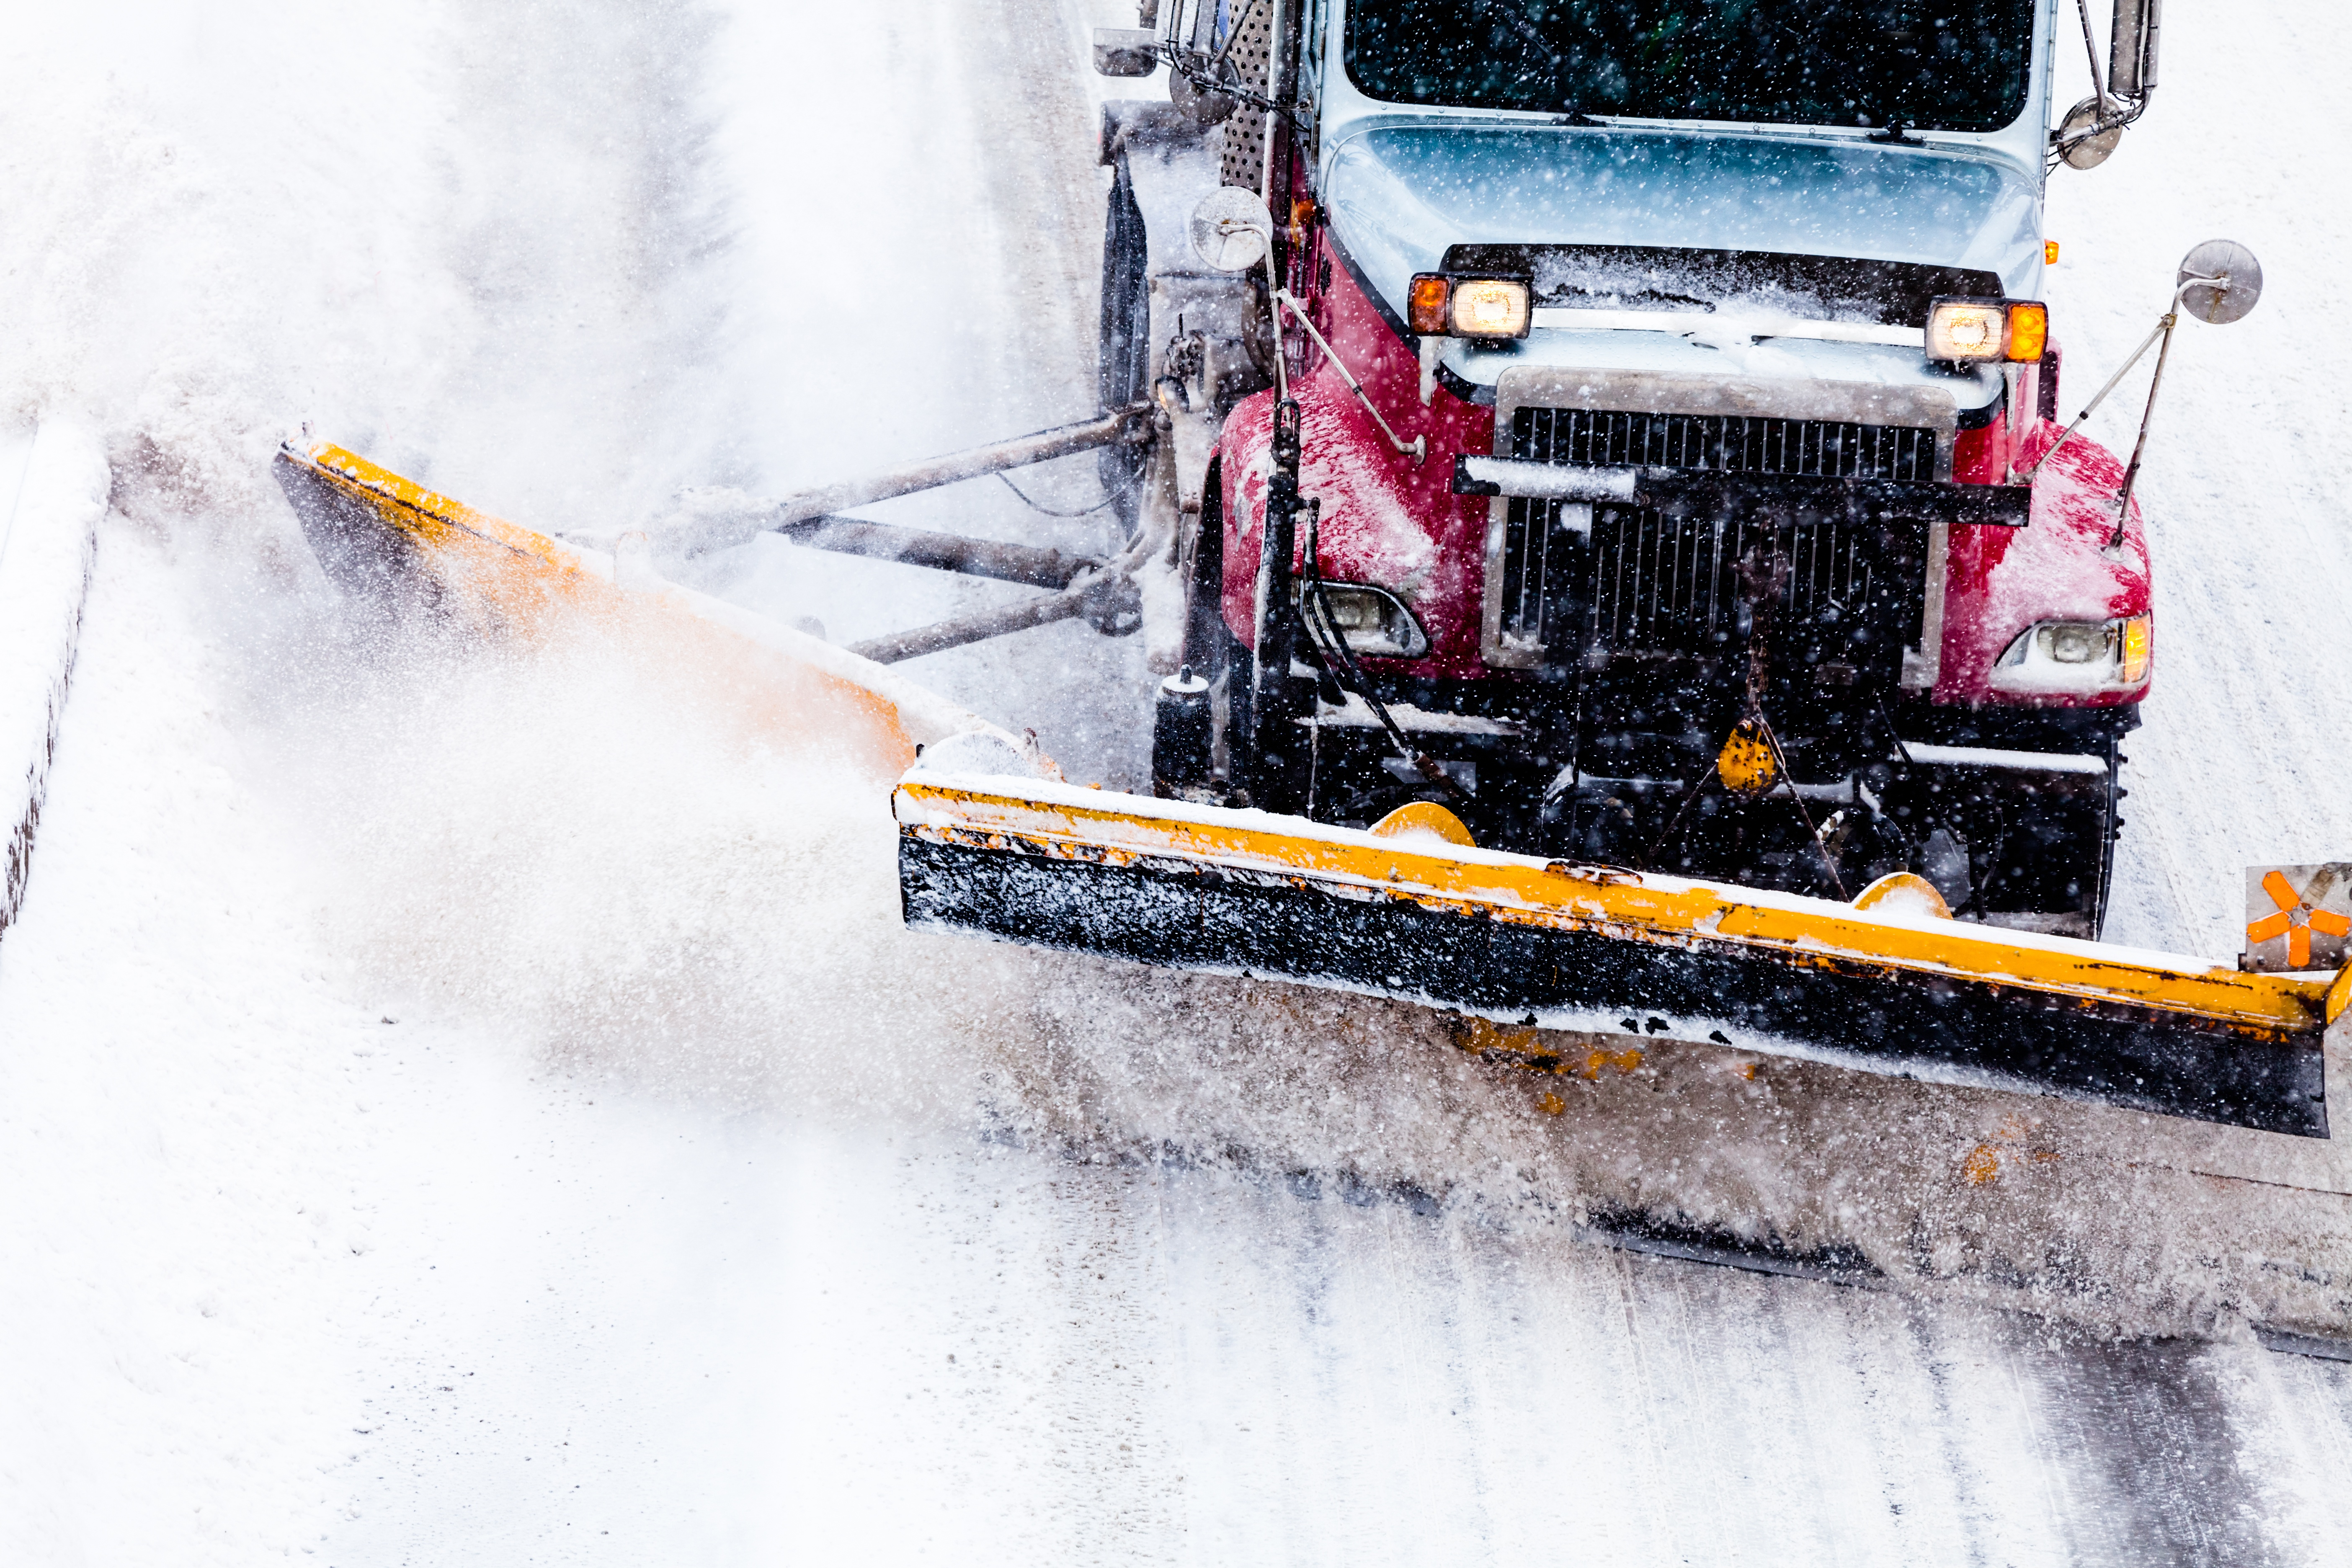 Some of the most severe damage that can happen to a lawn over the winter months is from snow plows